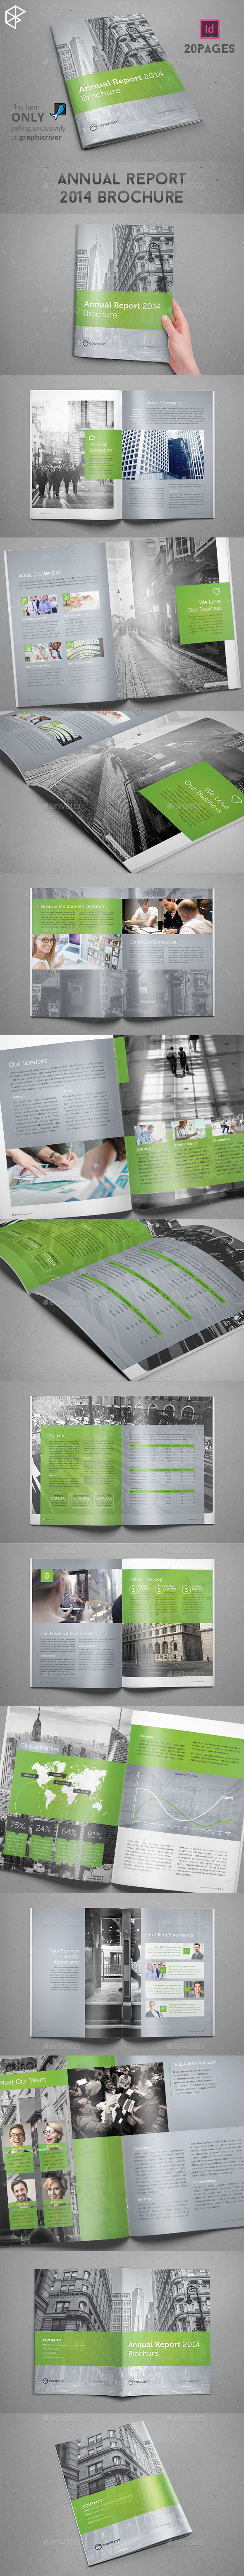 Annual Report 2014 Brochure - Corporate Brochures